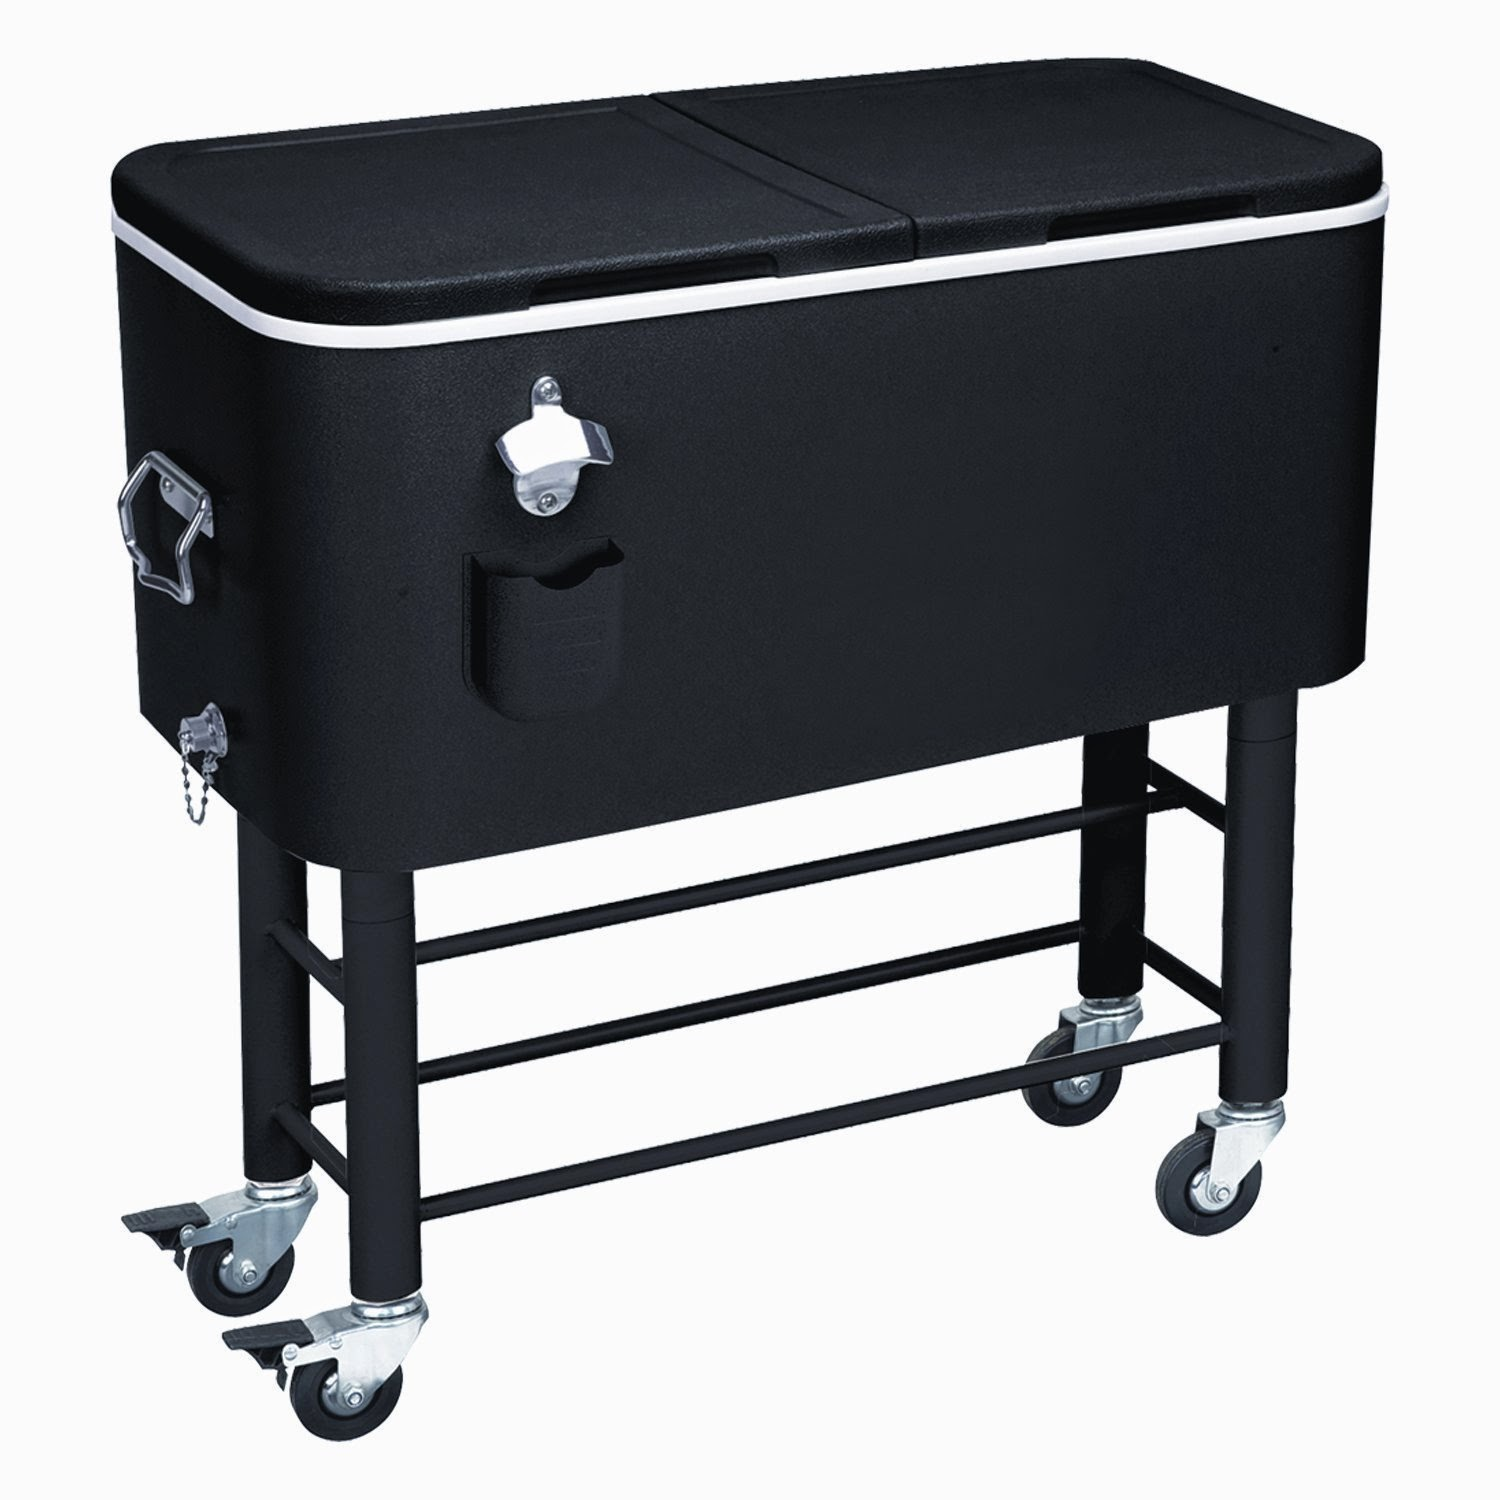 Stainless Steel Cooler